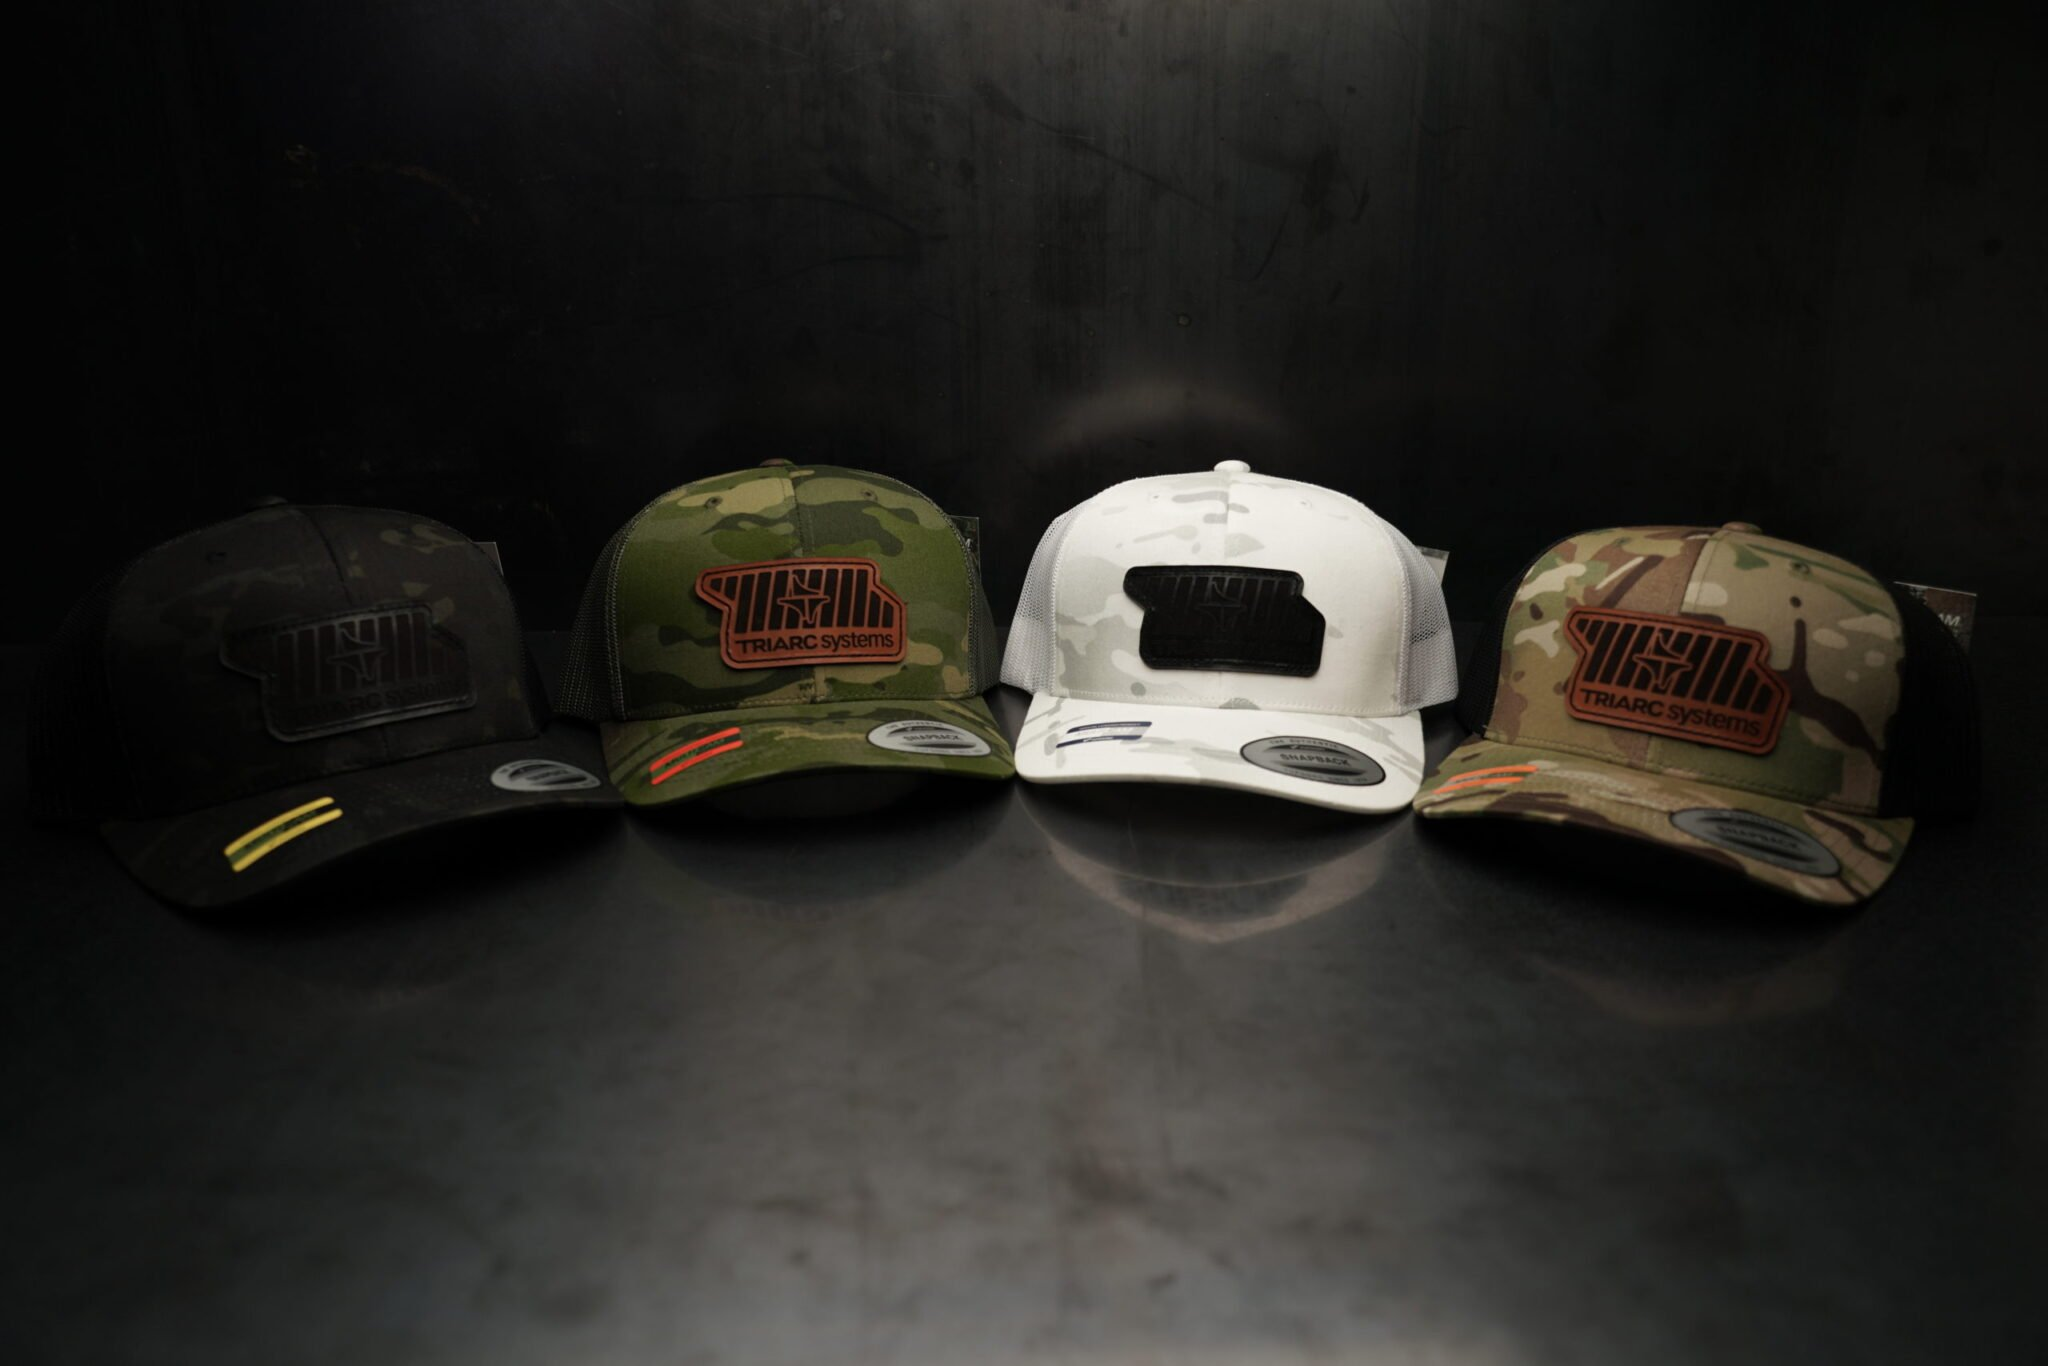 TRIARC Systems Hats